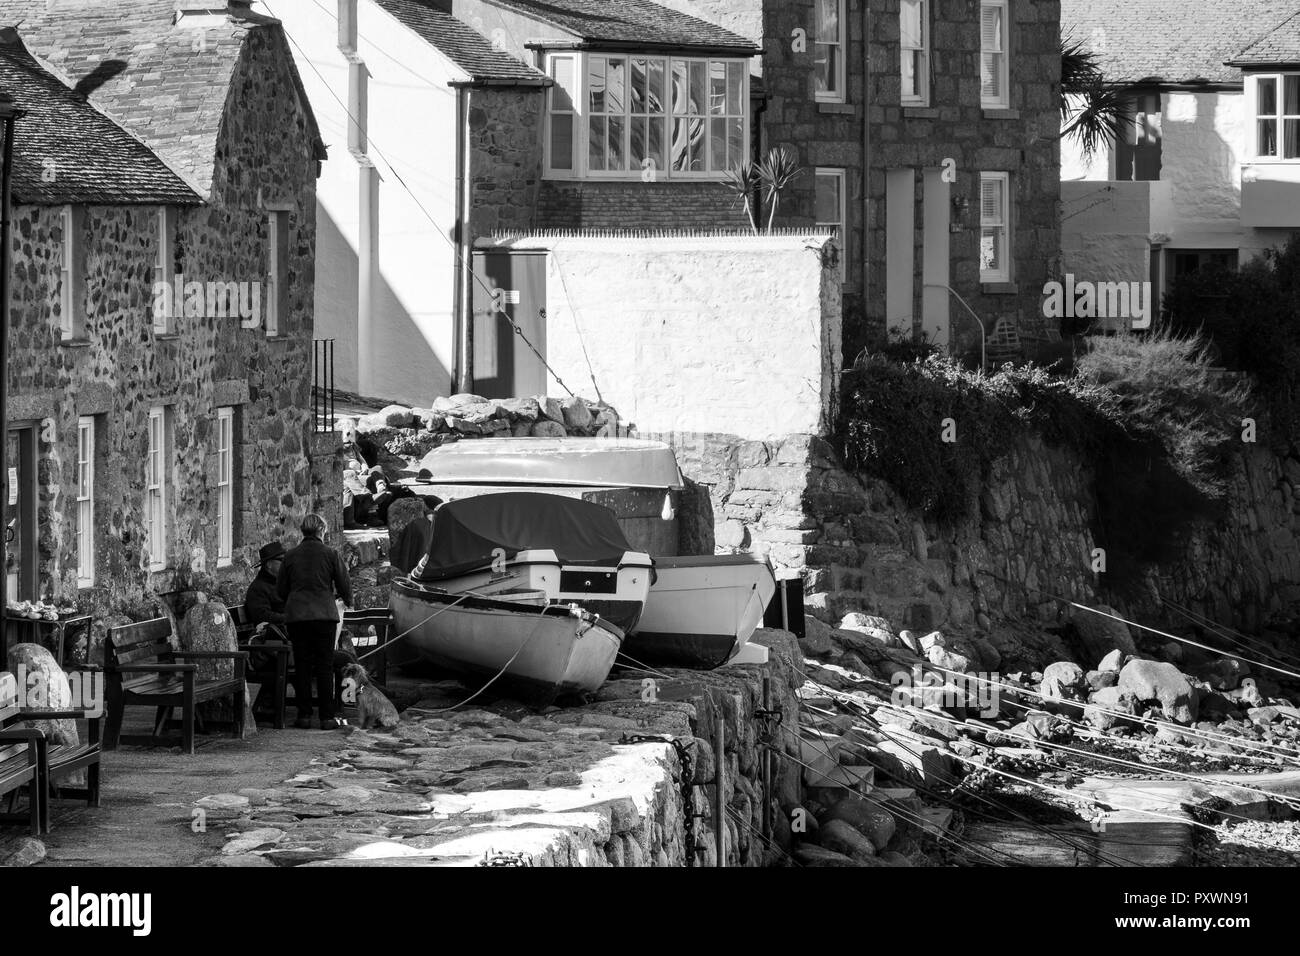 Black and White image of a small part of Mousehole harbour, beached boats and traditional fishermen's cottages with people chatting. - Stock Image